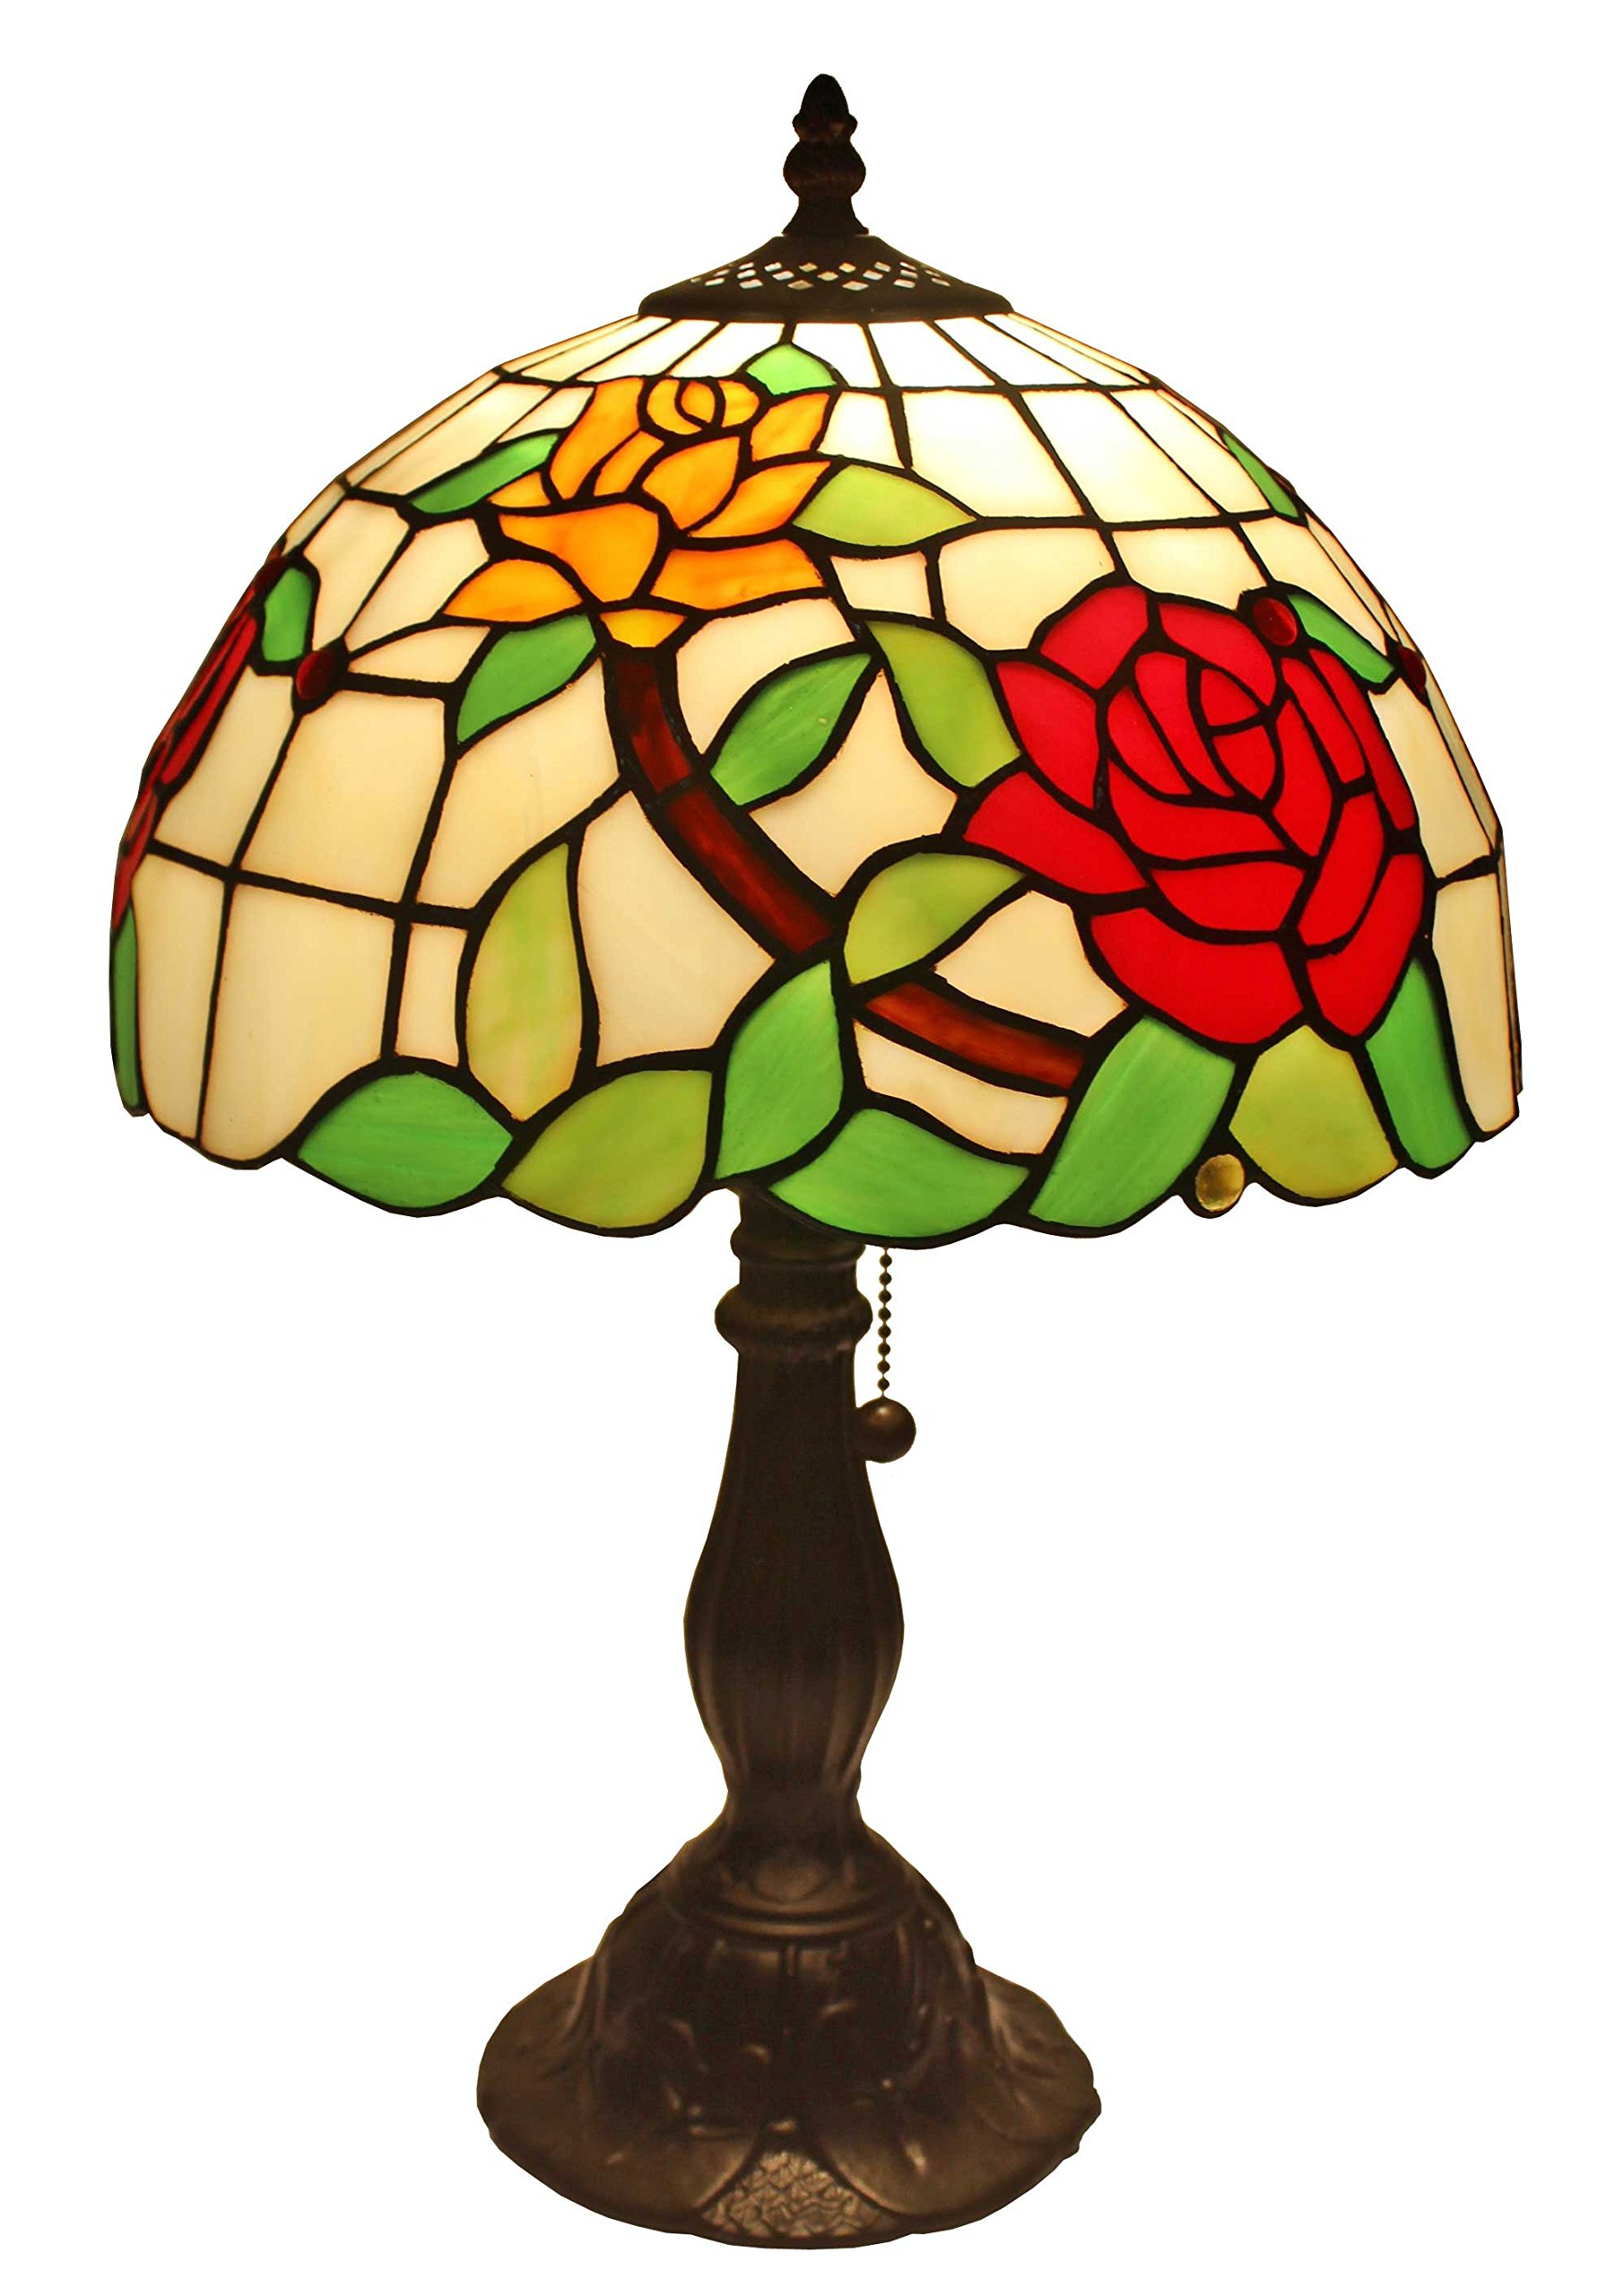 Amora Lighting Tiffany Style AM043TL12 Floral Design 19-inch Table Lamp by Amora Lighting